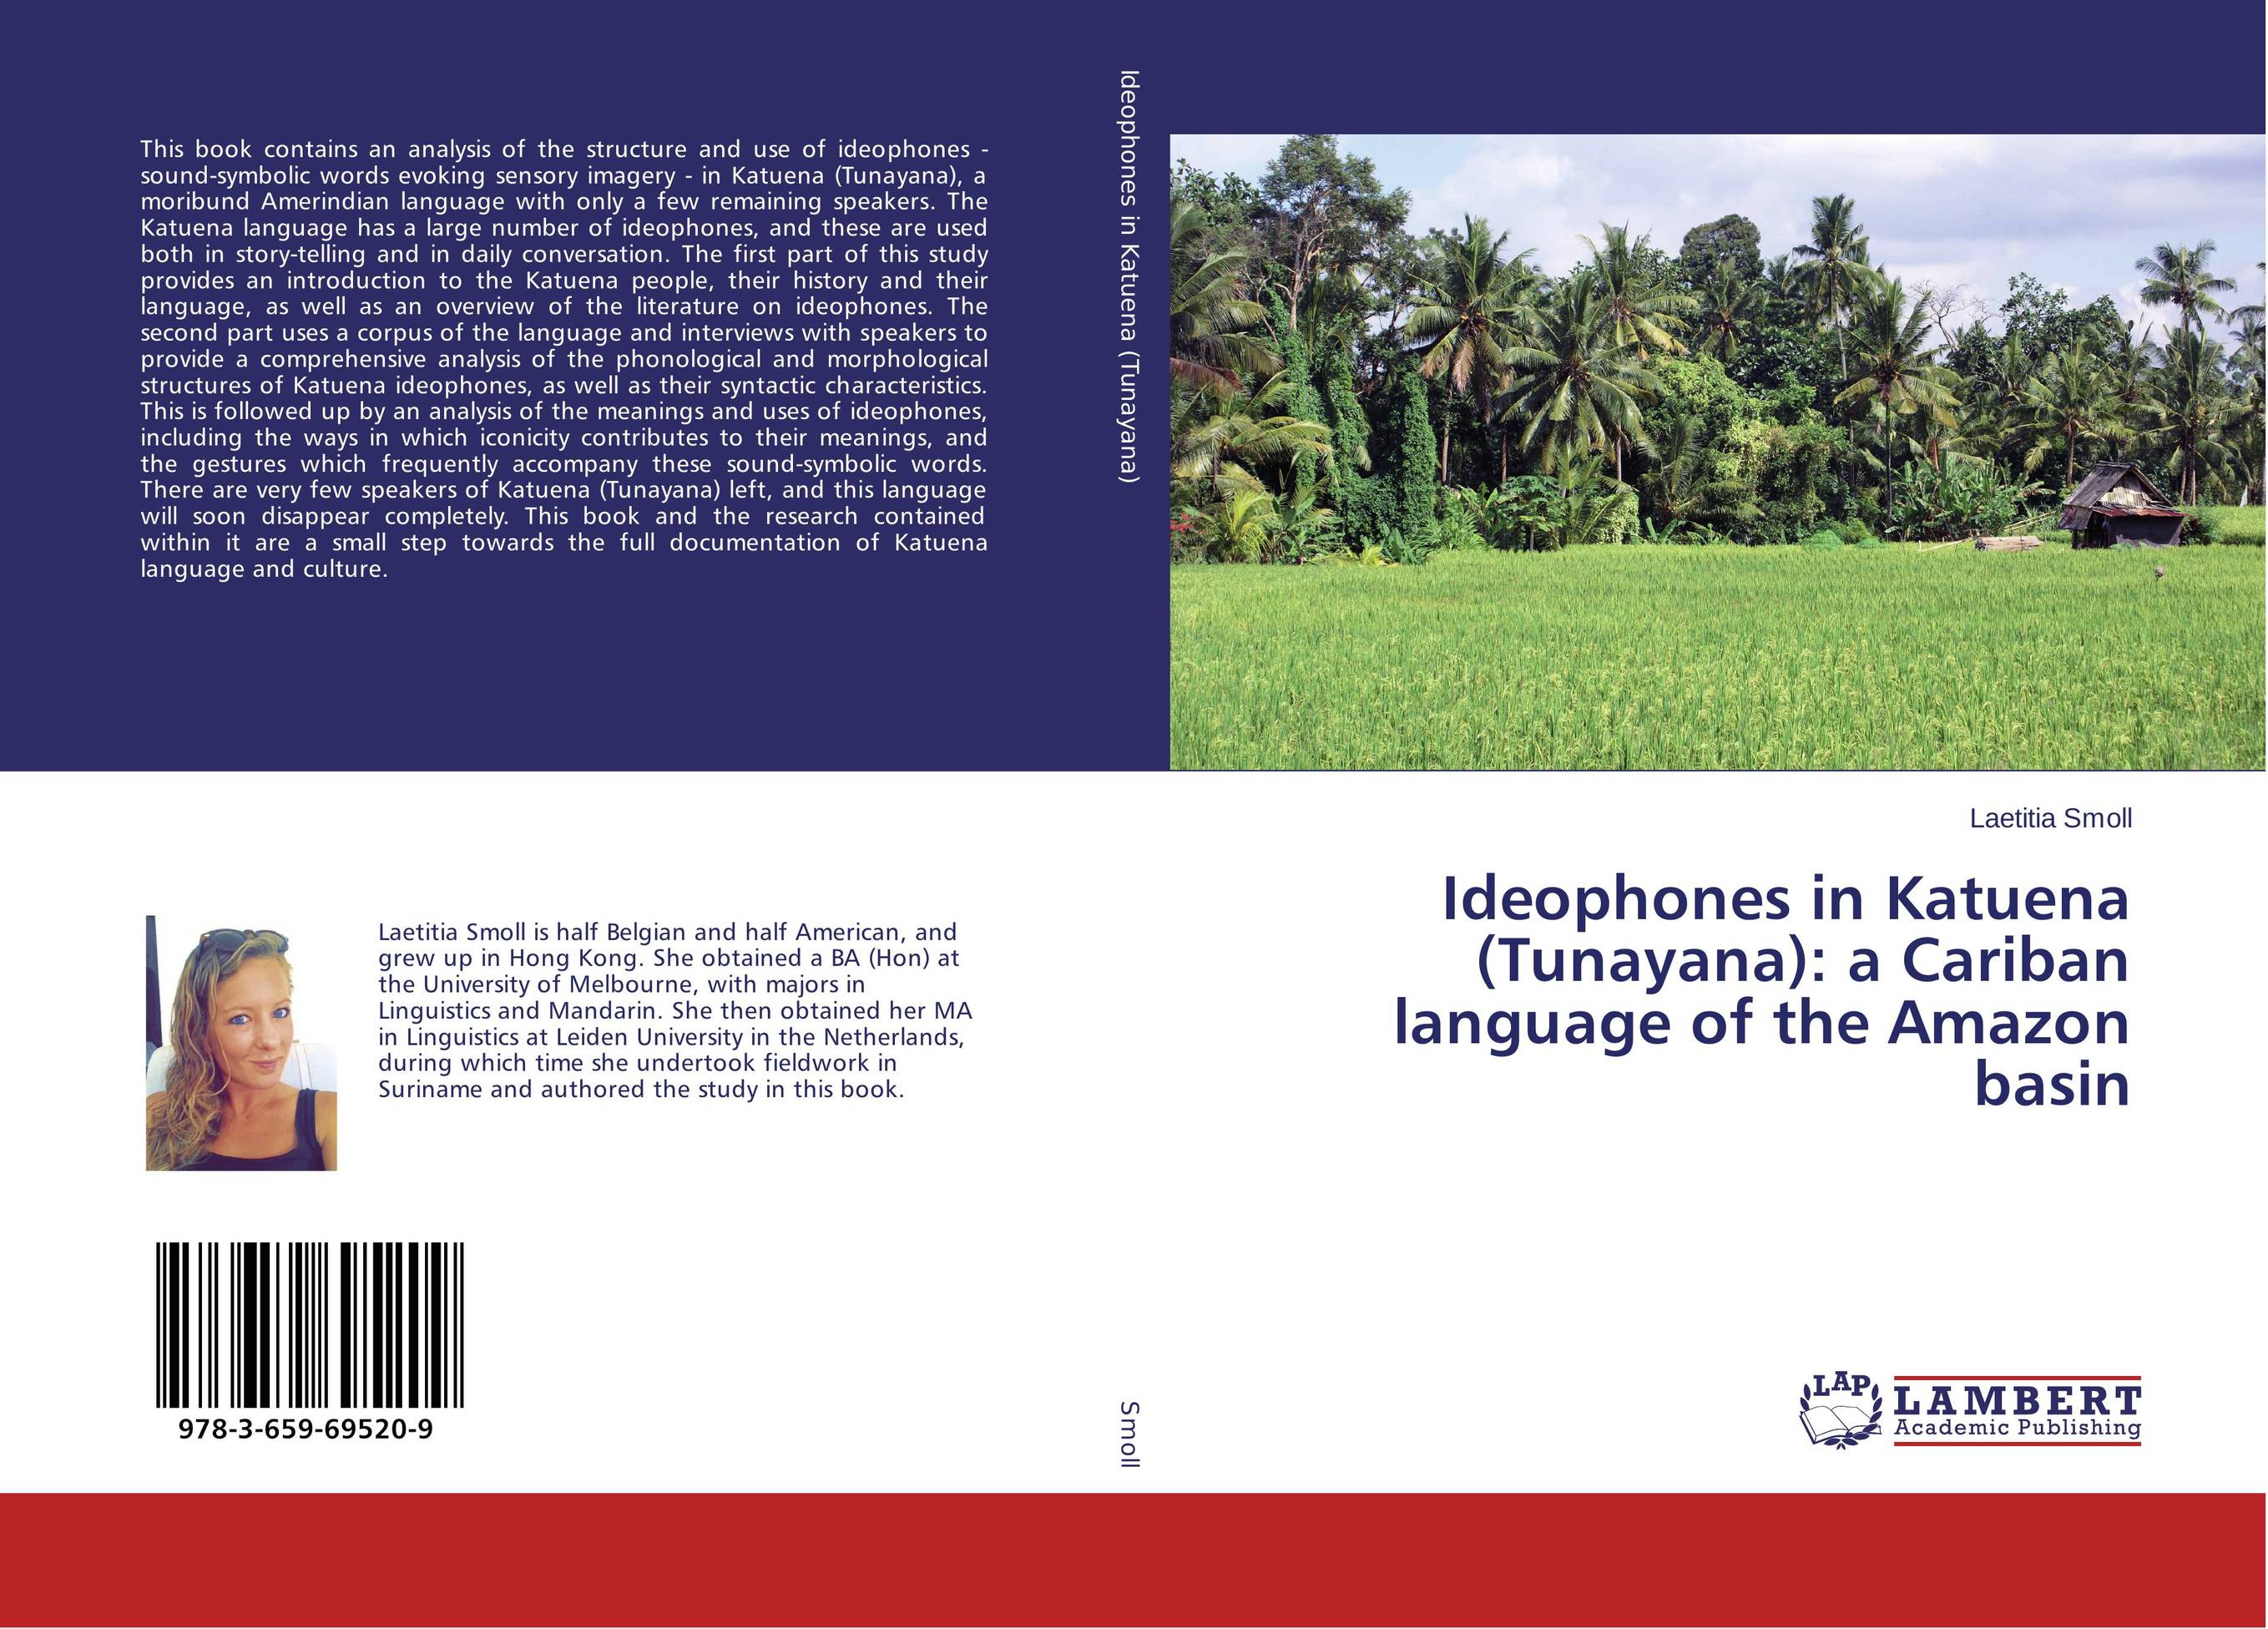 Ideophones in Katuena (Tunayana): a Cariban language of the Amazon basin e hutchins culture and inference – a trobriand case study